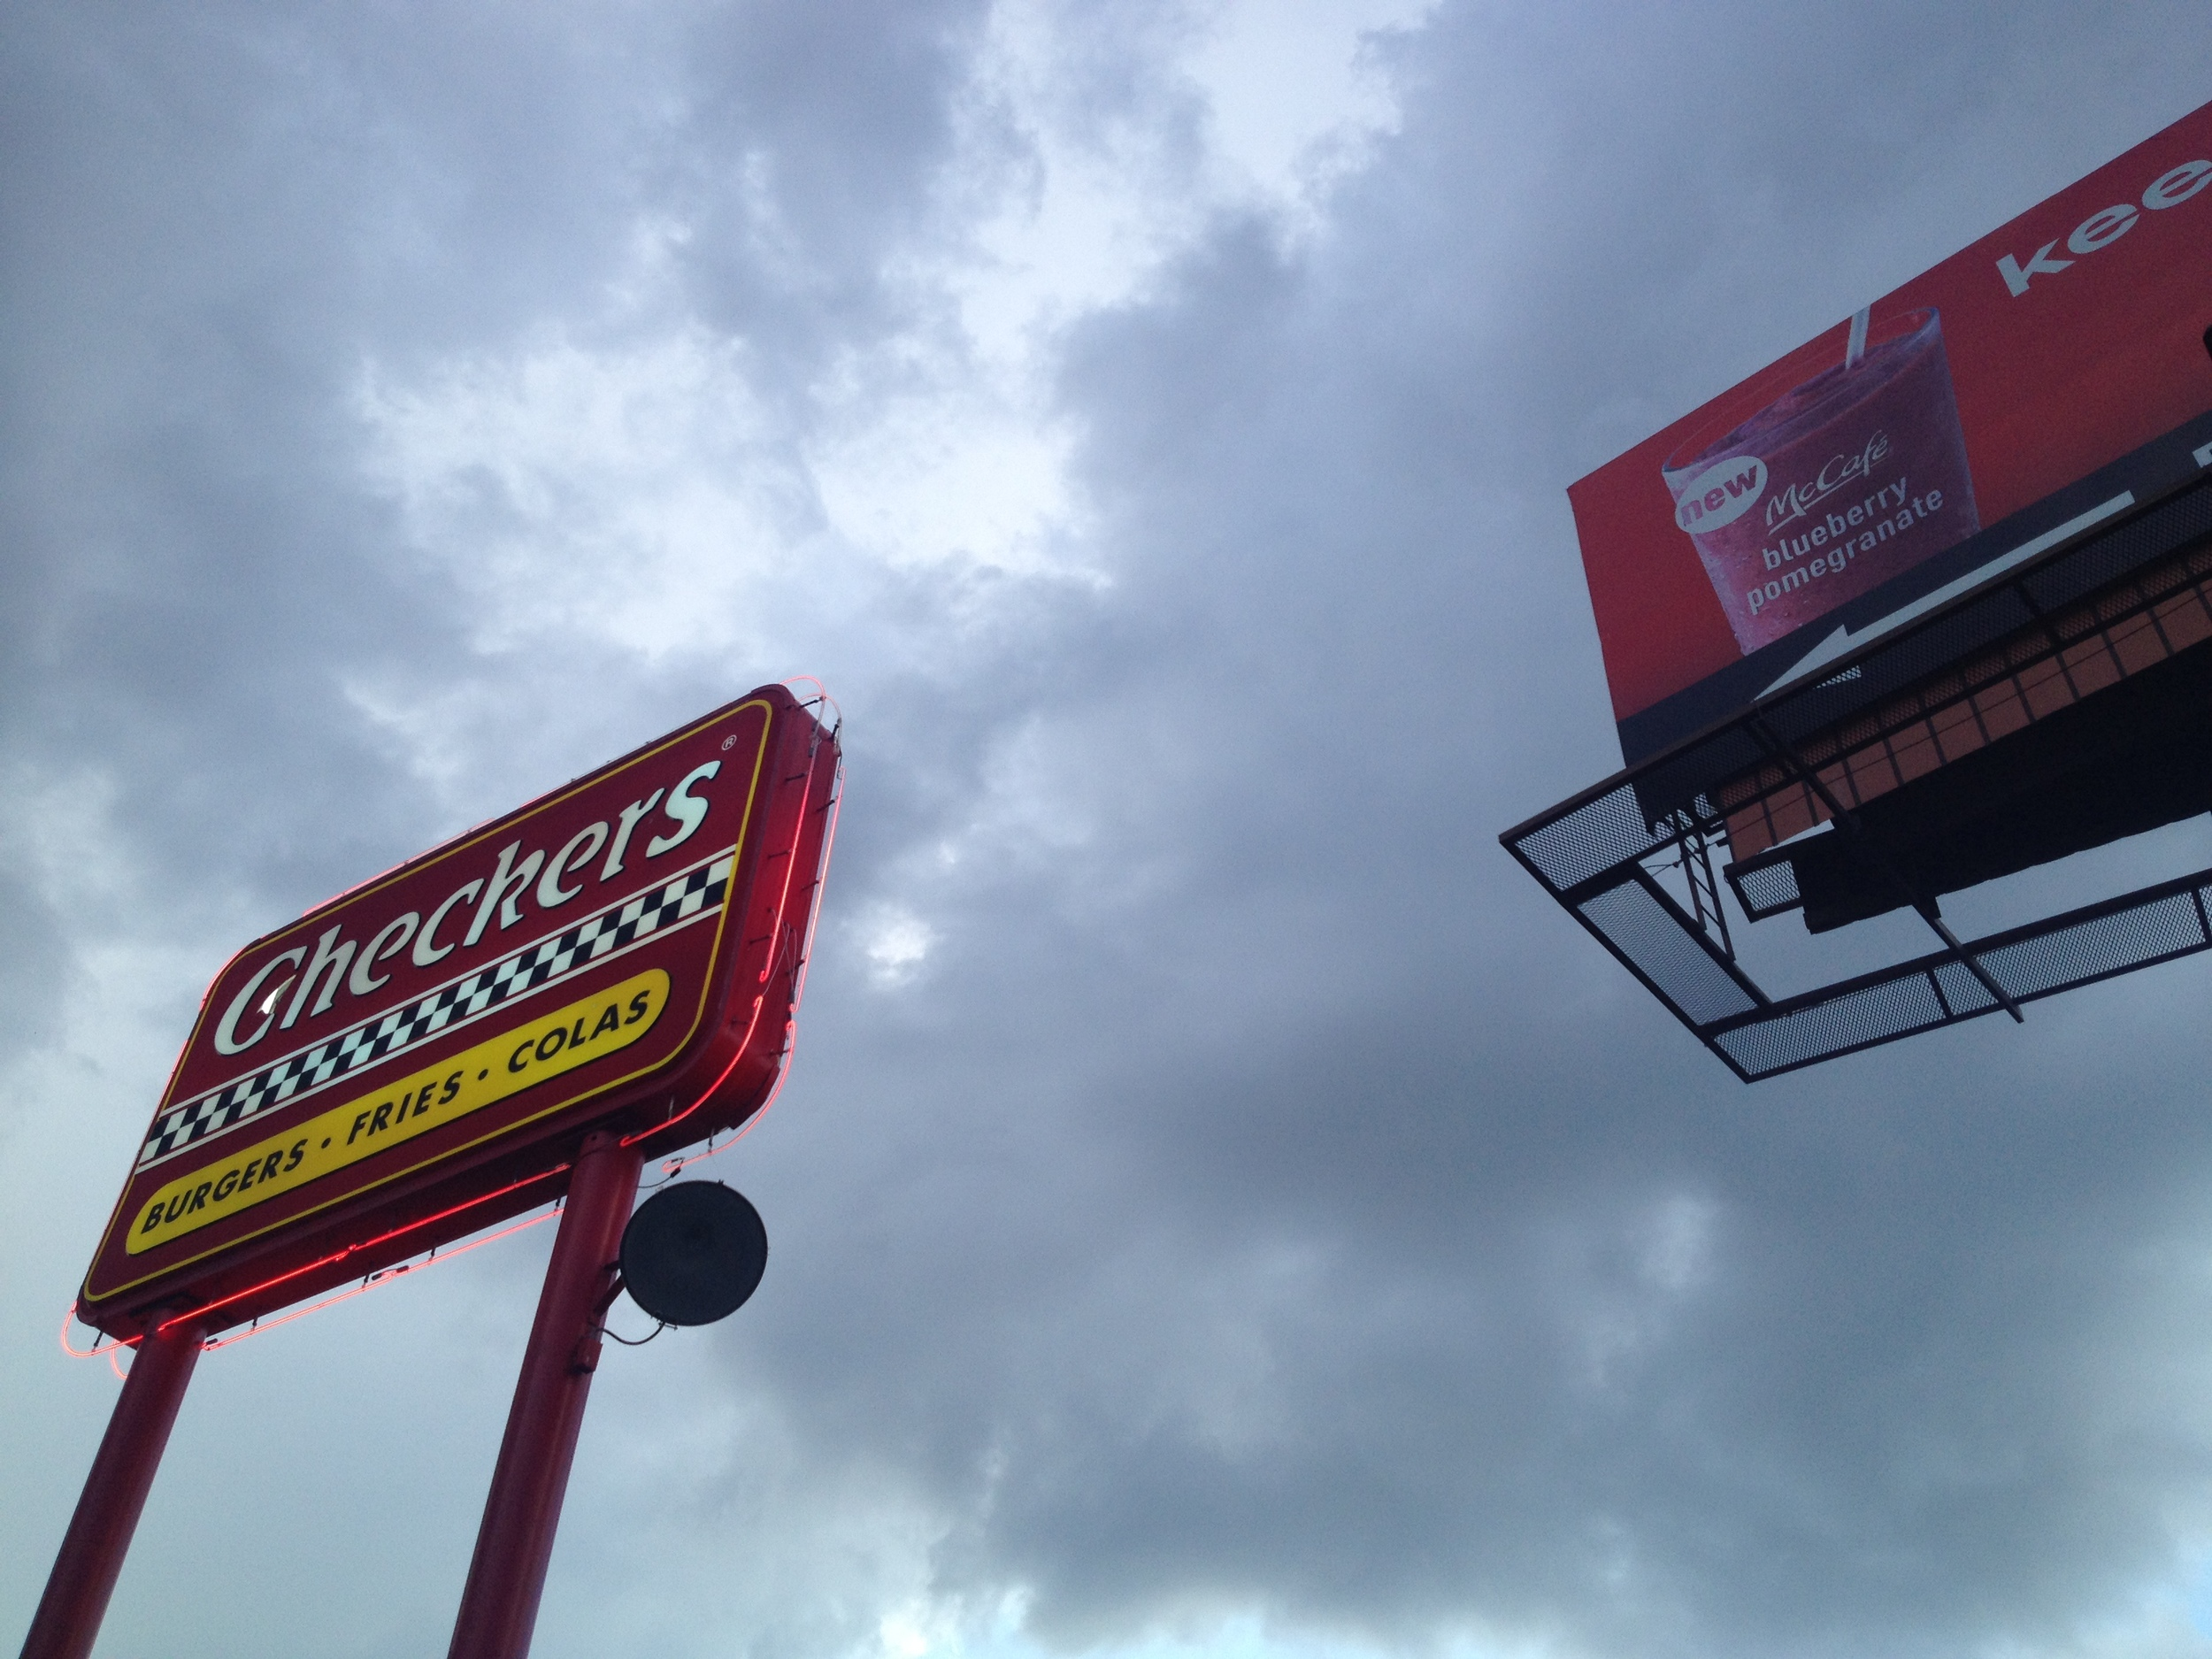 Strategic Advertising (Checkers and McDonald's) Savannah, GA, 2014